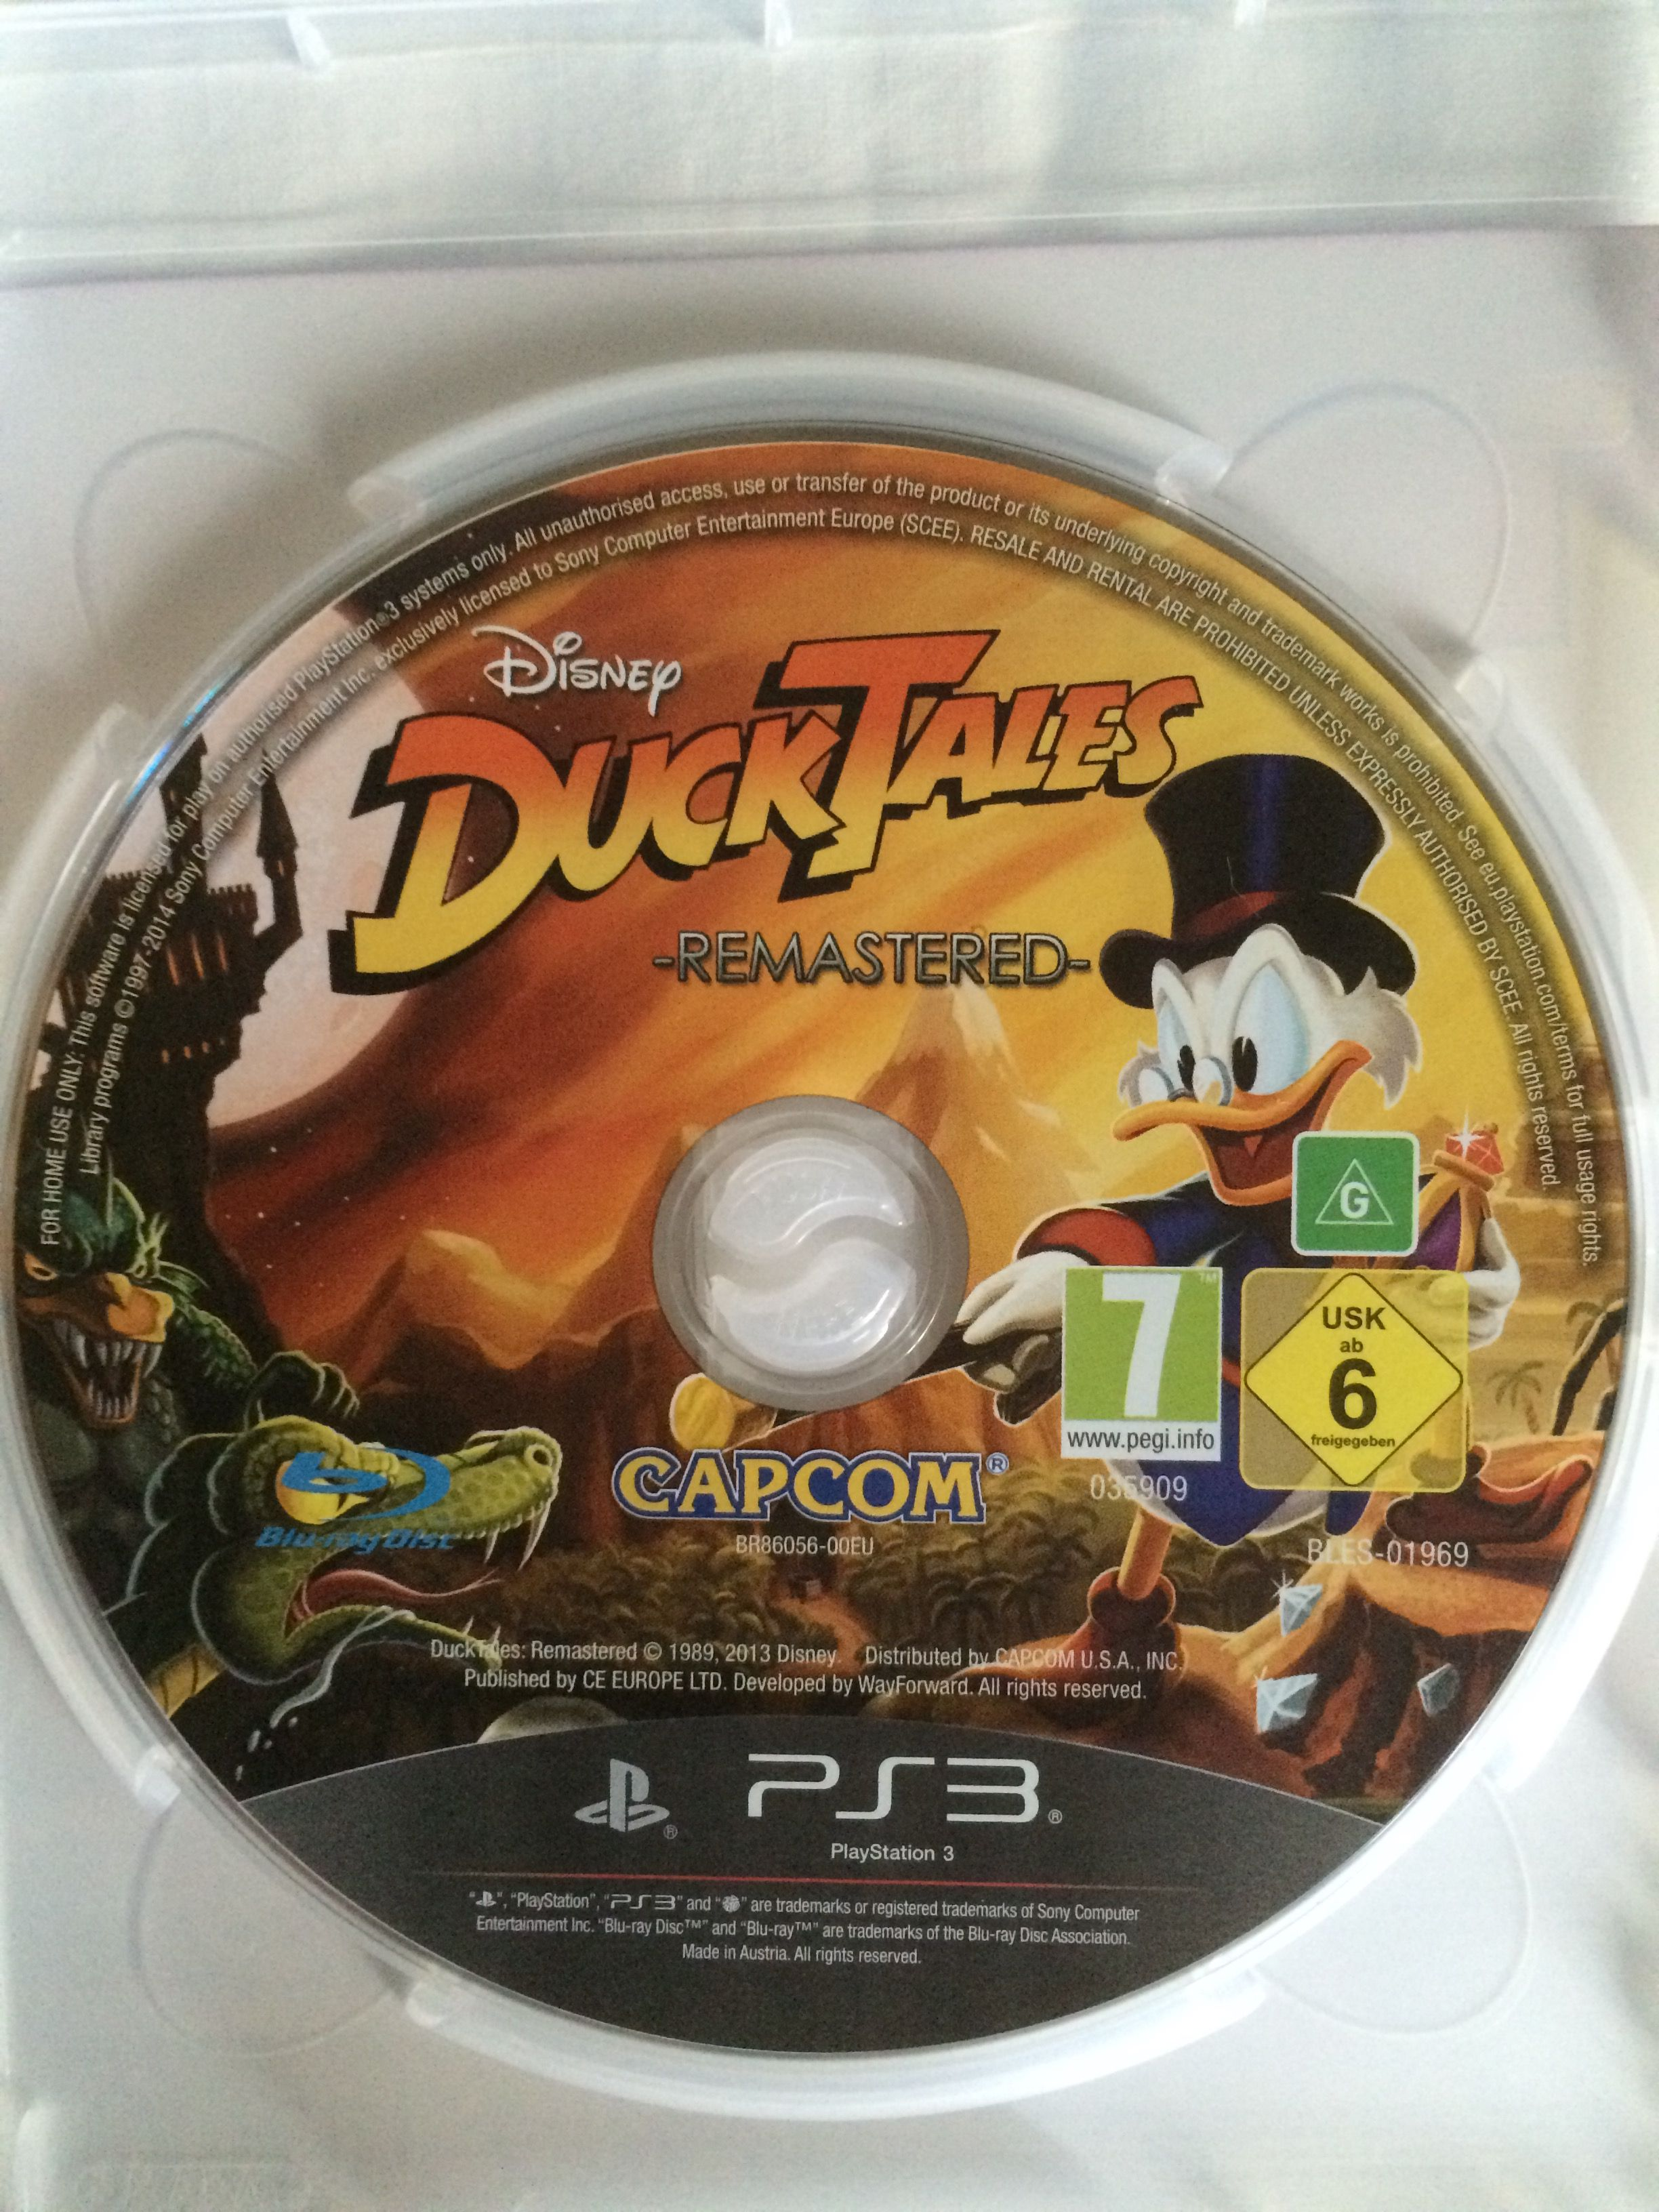 DuckTales Remastered game disc. | DuckTales Remastered "|2448|3264|?|en|2|934adbd979e3983db29f920e4300c44f|False|UNLIKELY|0.37603670358657837